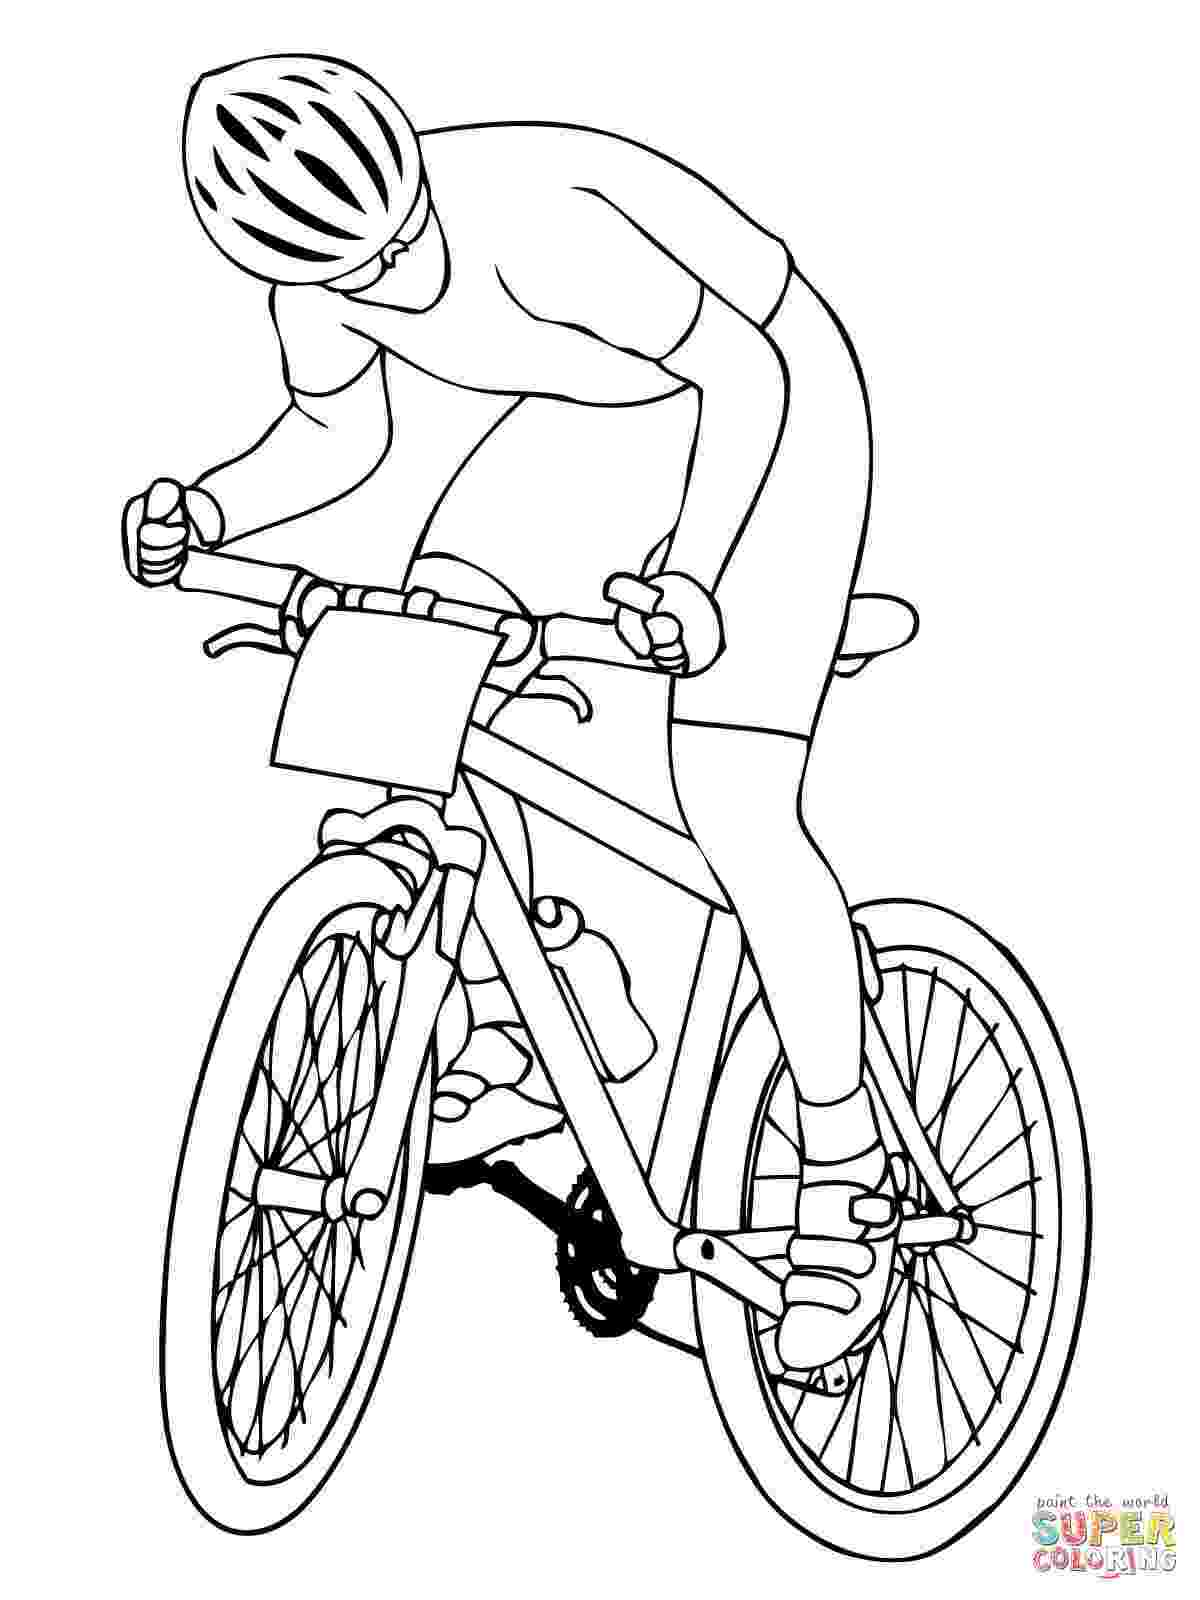 bike coloring pages road trip ideas for kids travel snacks games my life bike coloring pages